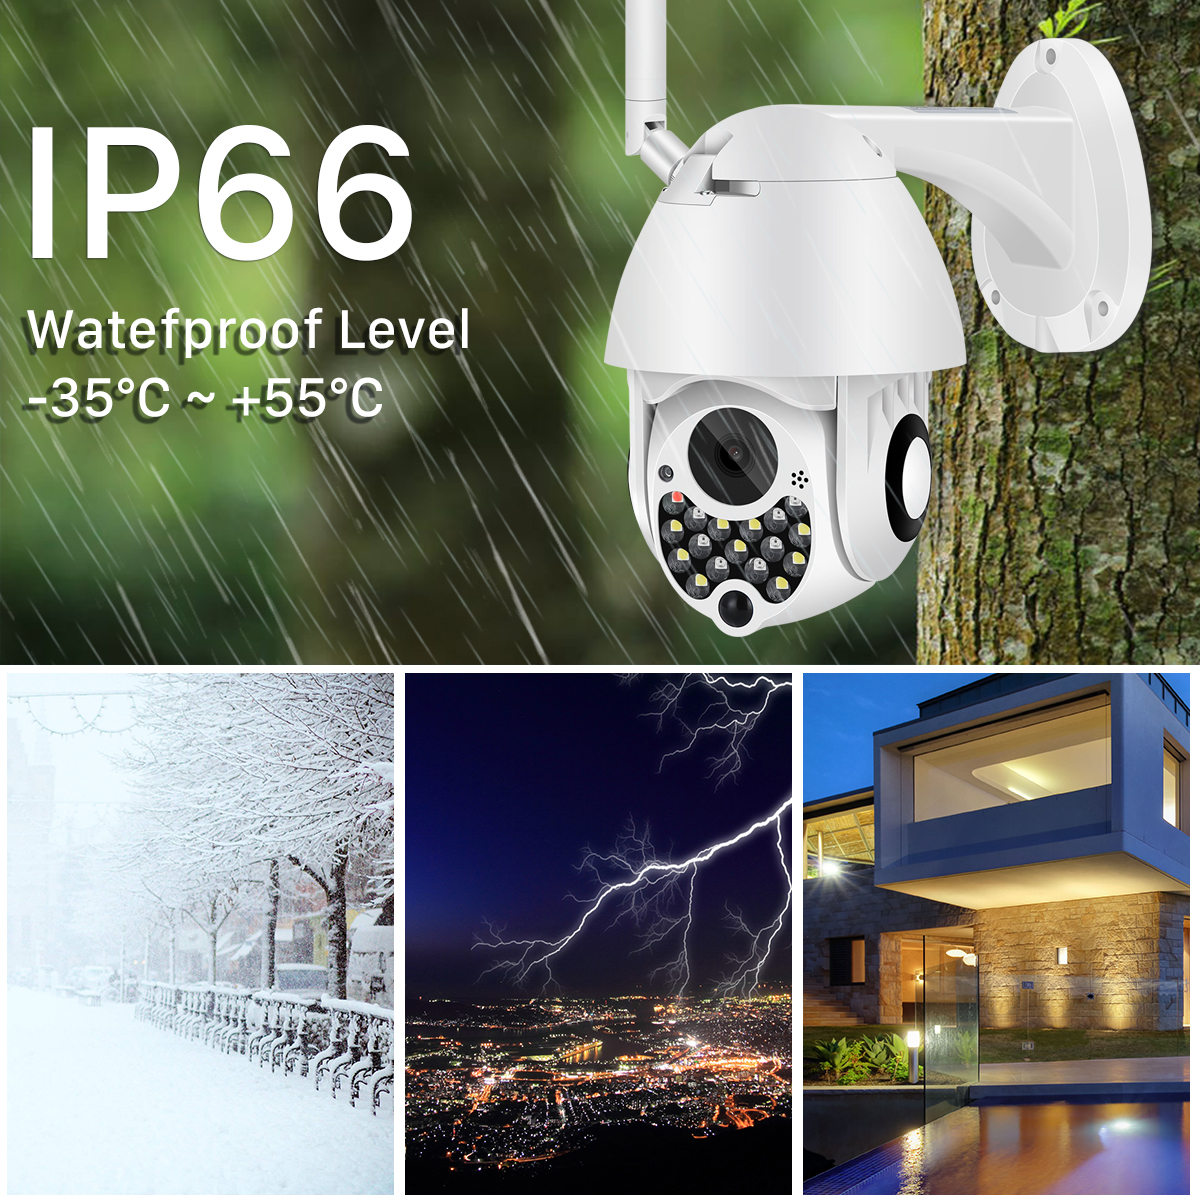 Hf1c532a90d5b413189191f88c2c770e6O 1080P Outdoor Wifi PTZ Camera with Siren Light Auto Tracking Cloud Home Security IP Camera 2MP 4X Digital Zoom Speed Dome Camera